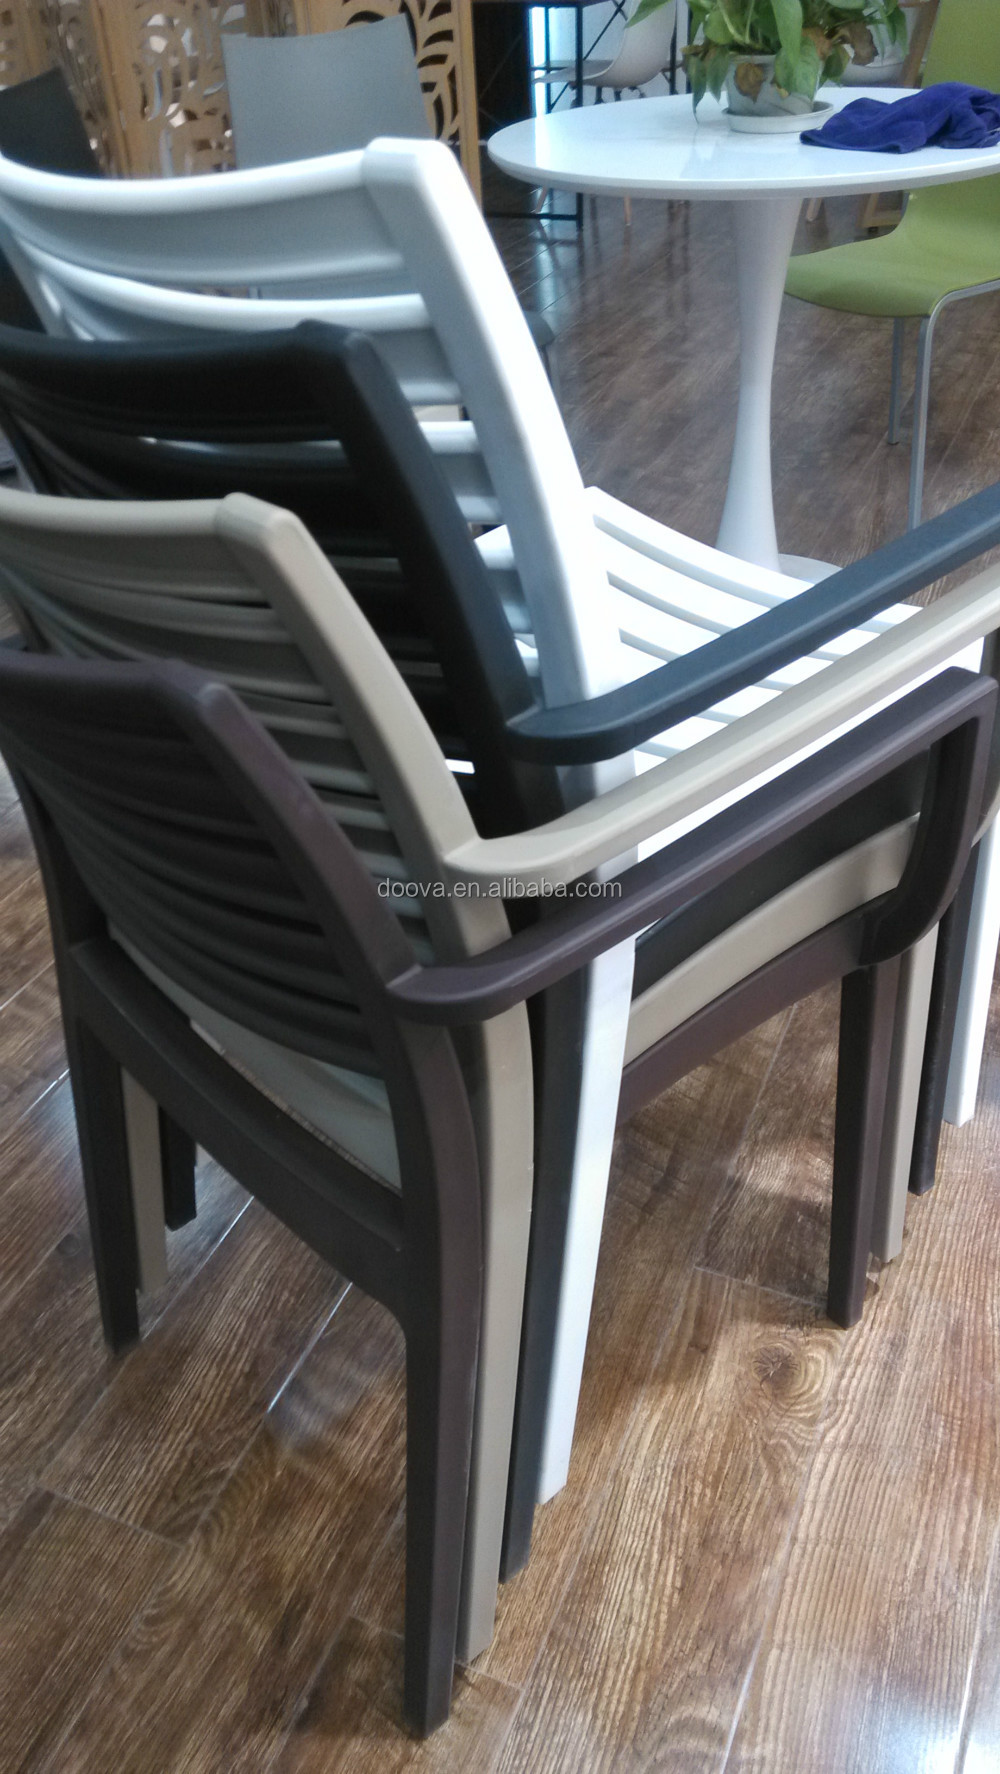 modern popular pp plastic chair with arms.jpg